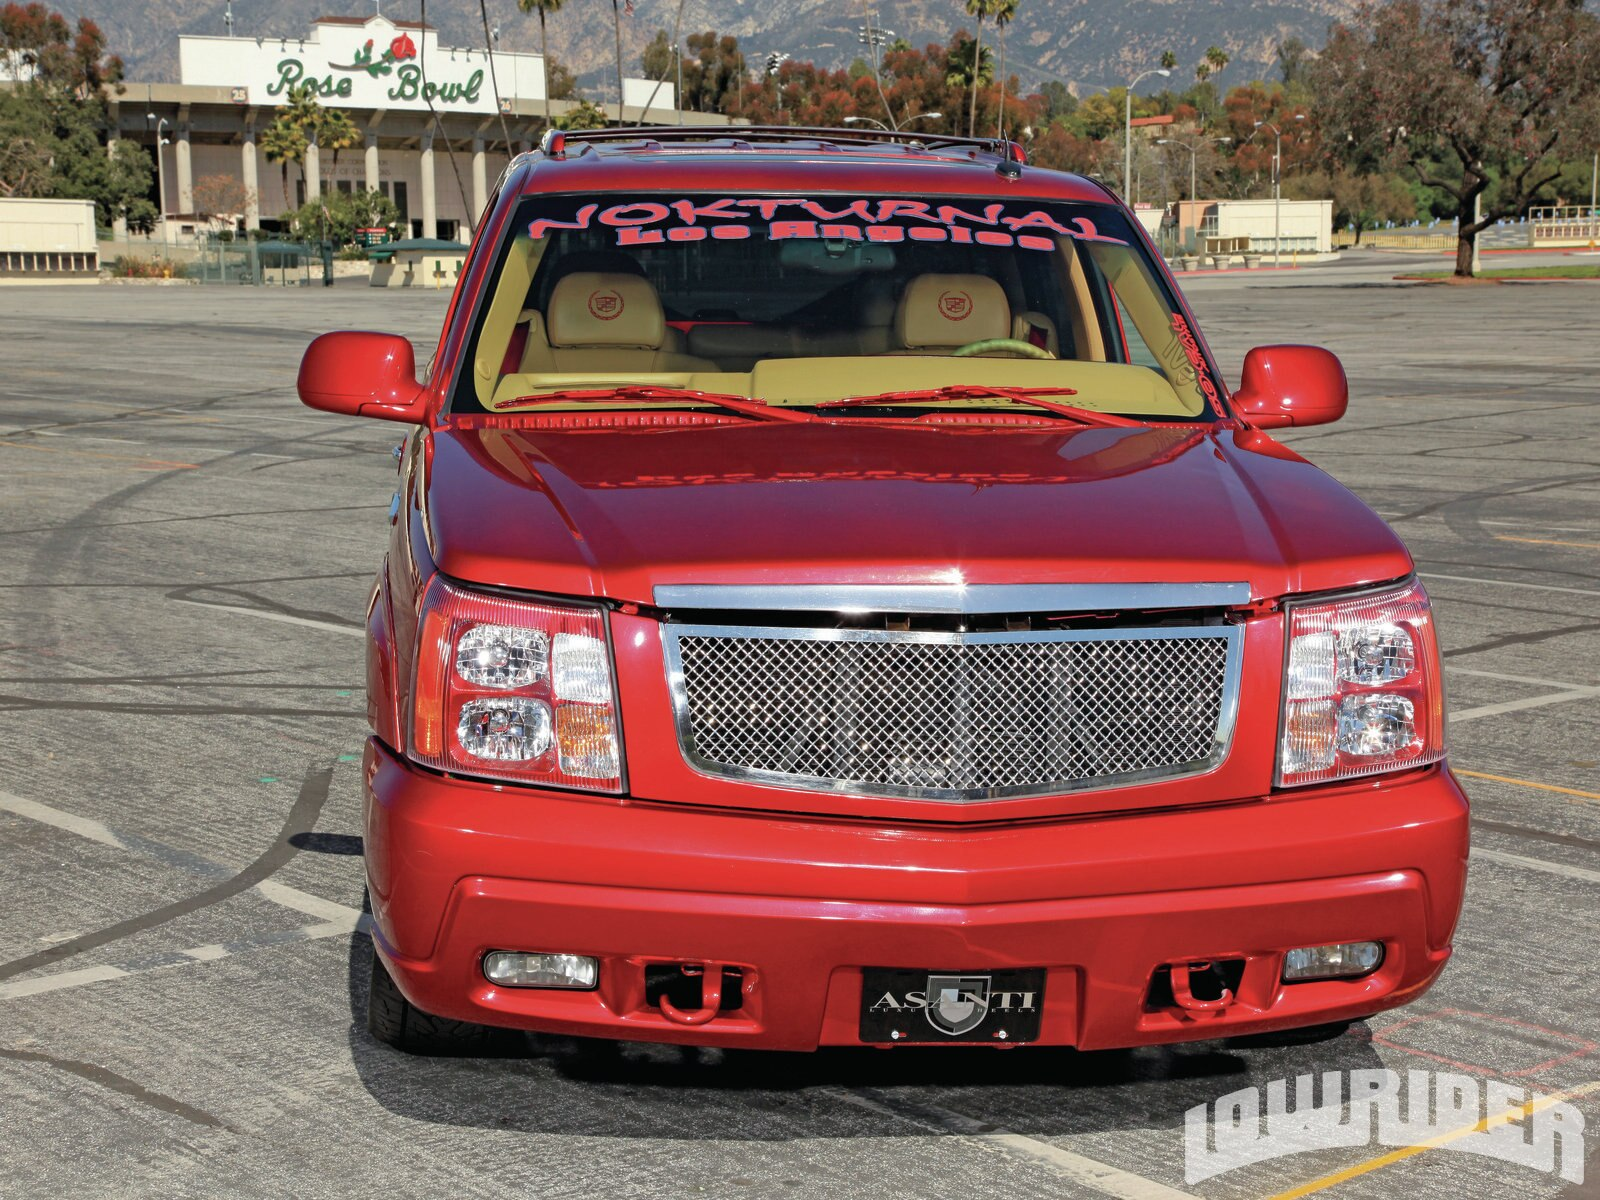 2002-cadillac-escalade-front-grille-view1